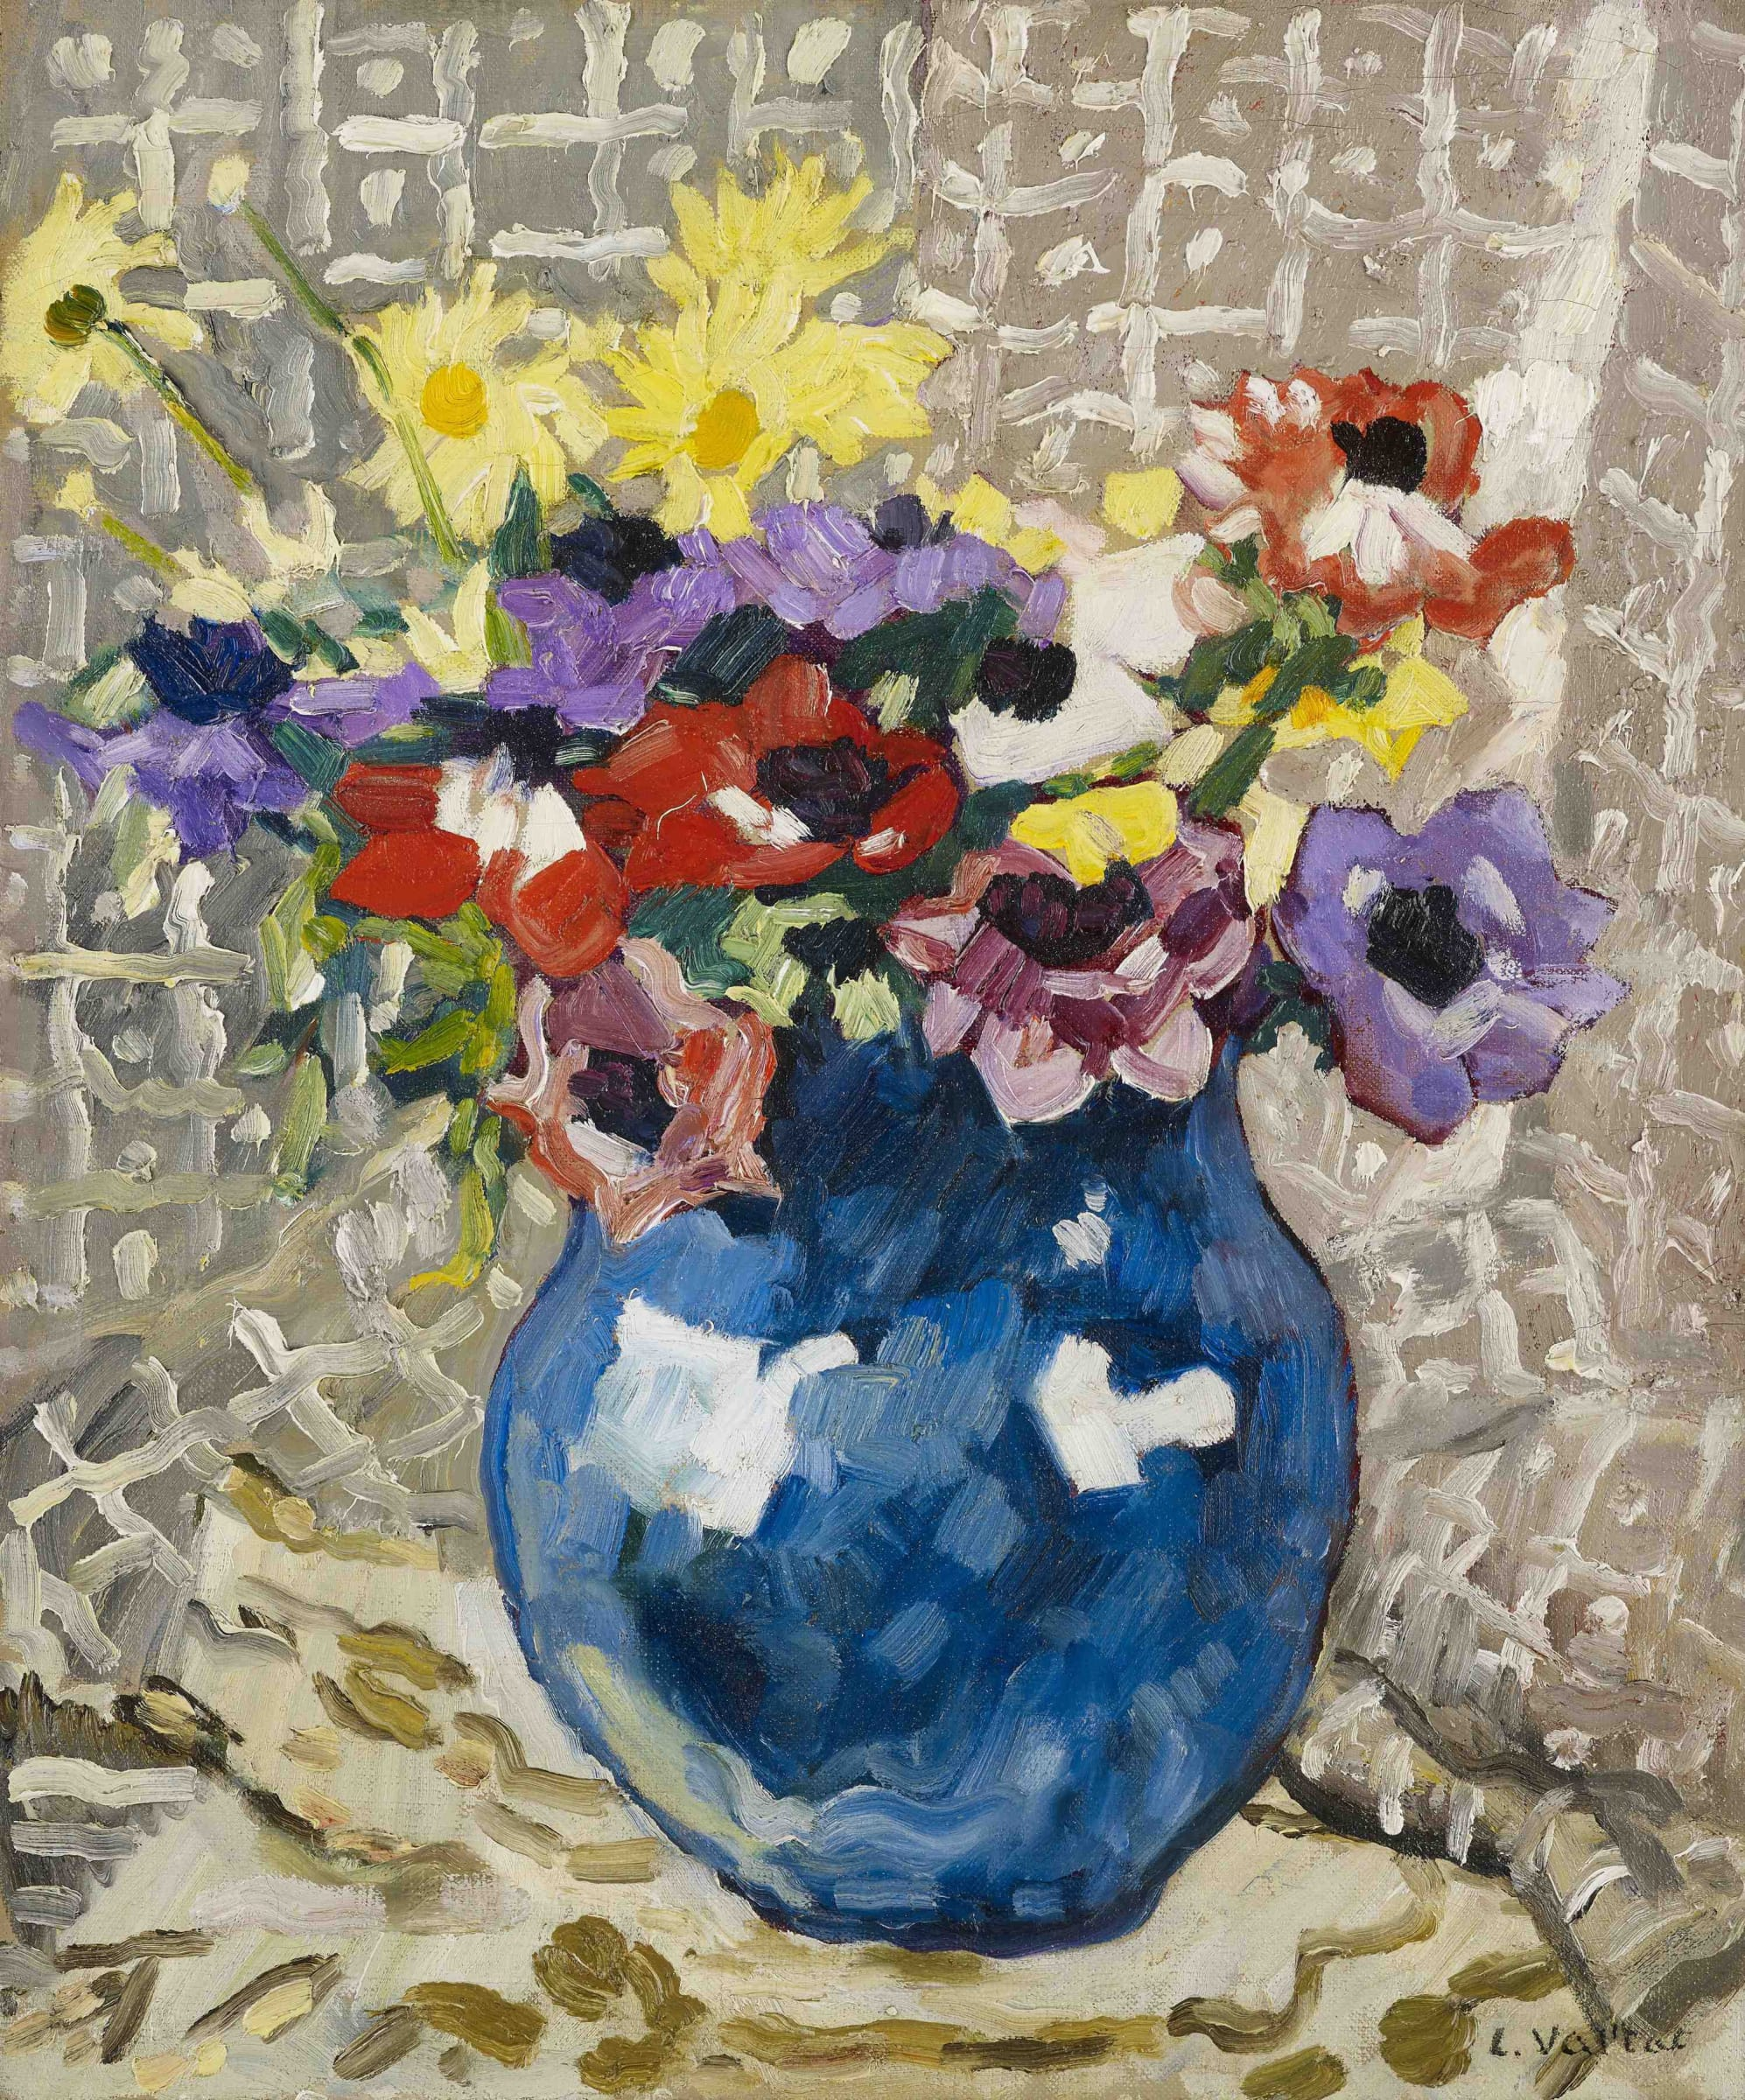 <span class=&#34;link fancybox-details-link&#34;><a href=&#34;/artists/78-louis-valtat/works/9424-louis-valtat-an-mones-et-marguerites-au-vase-bleu-1933/&#34;>View Detail Page</a></span><div class=&#34;artist&#34;><span class=&#34;artist&#34;><strong>Louis Valtat</strong></span></div>